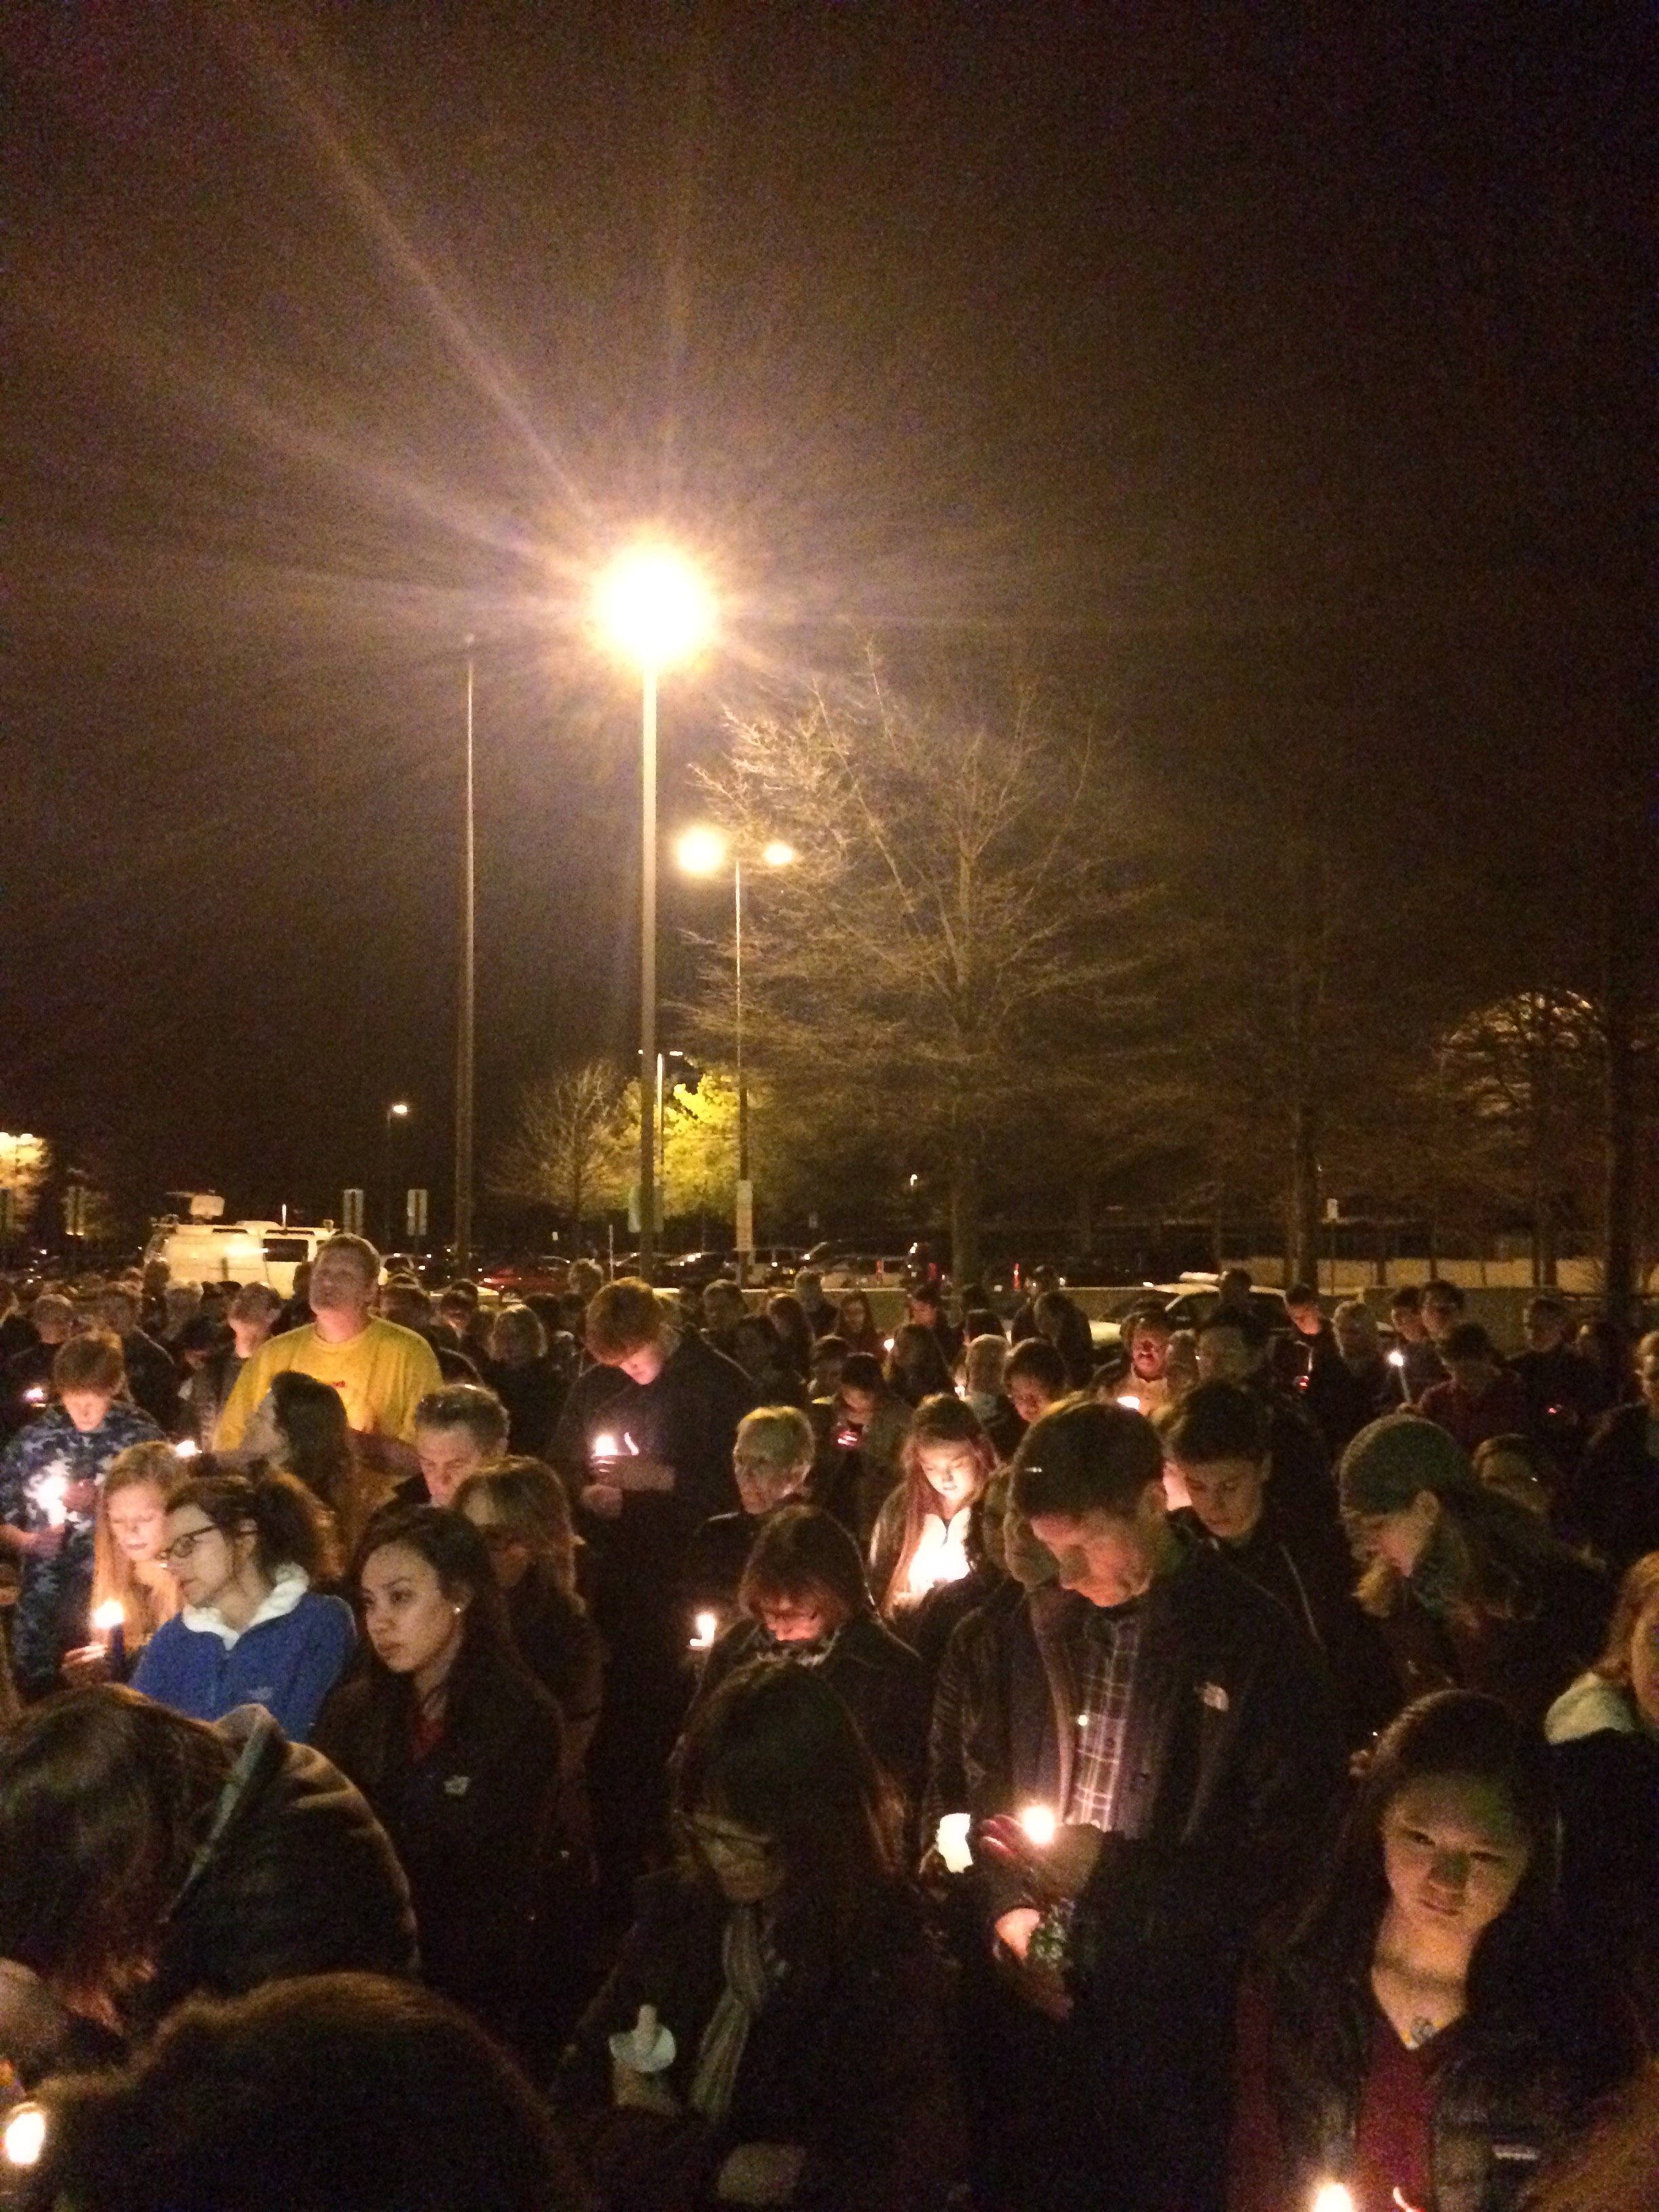 Tearful vigil held for 3 family members killed in Md. crash